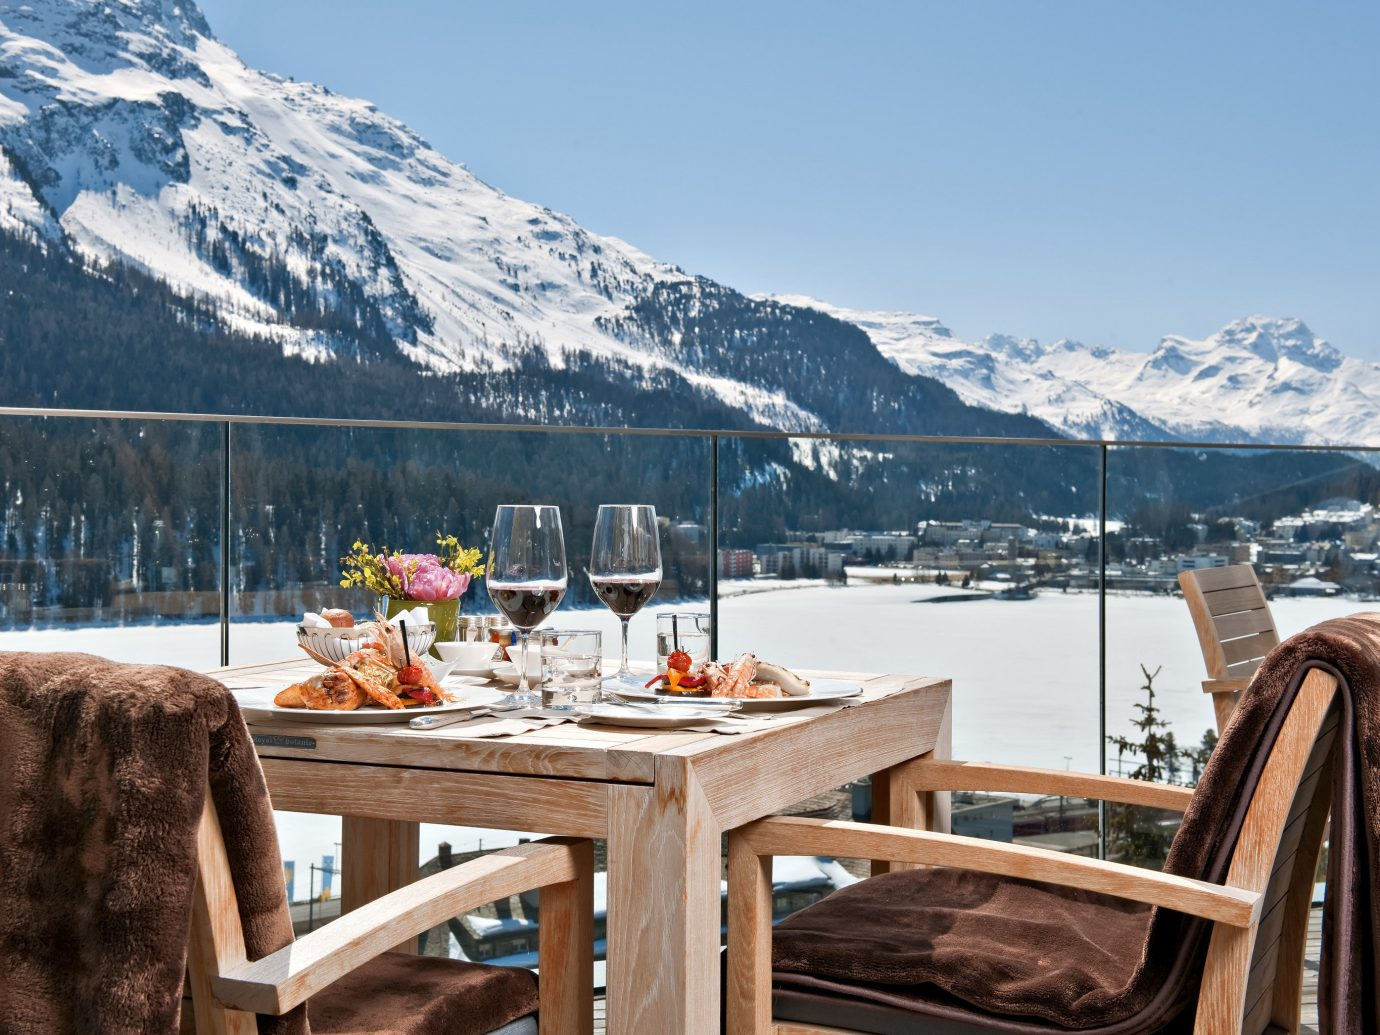 Trip Ideas sky mountain outdoor chair Winter vacation season Resort tourism snow overlooking